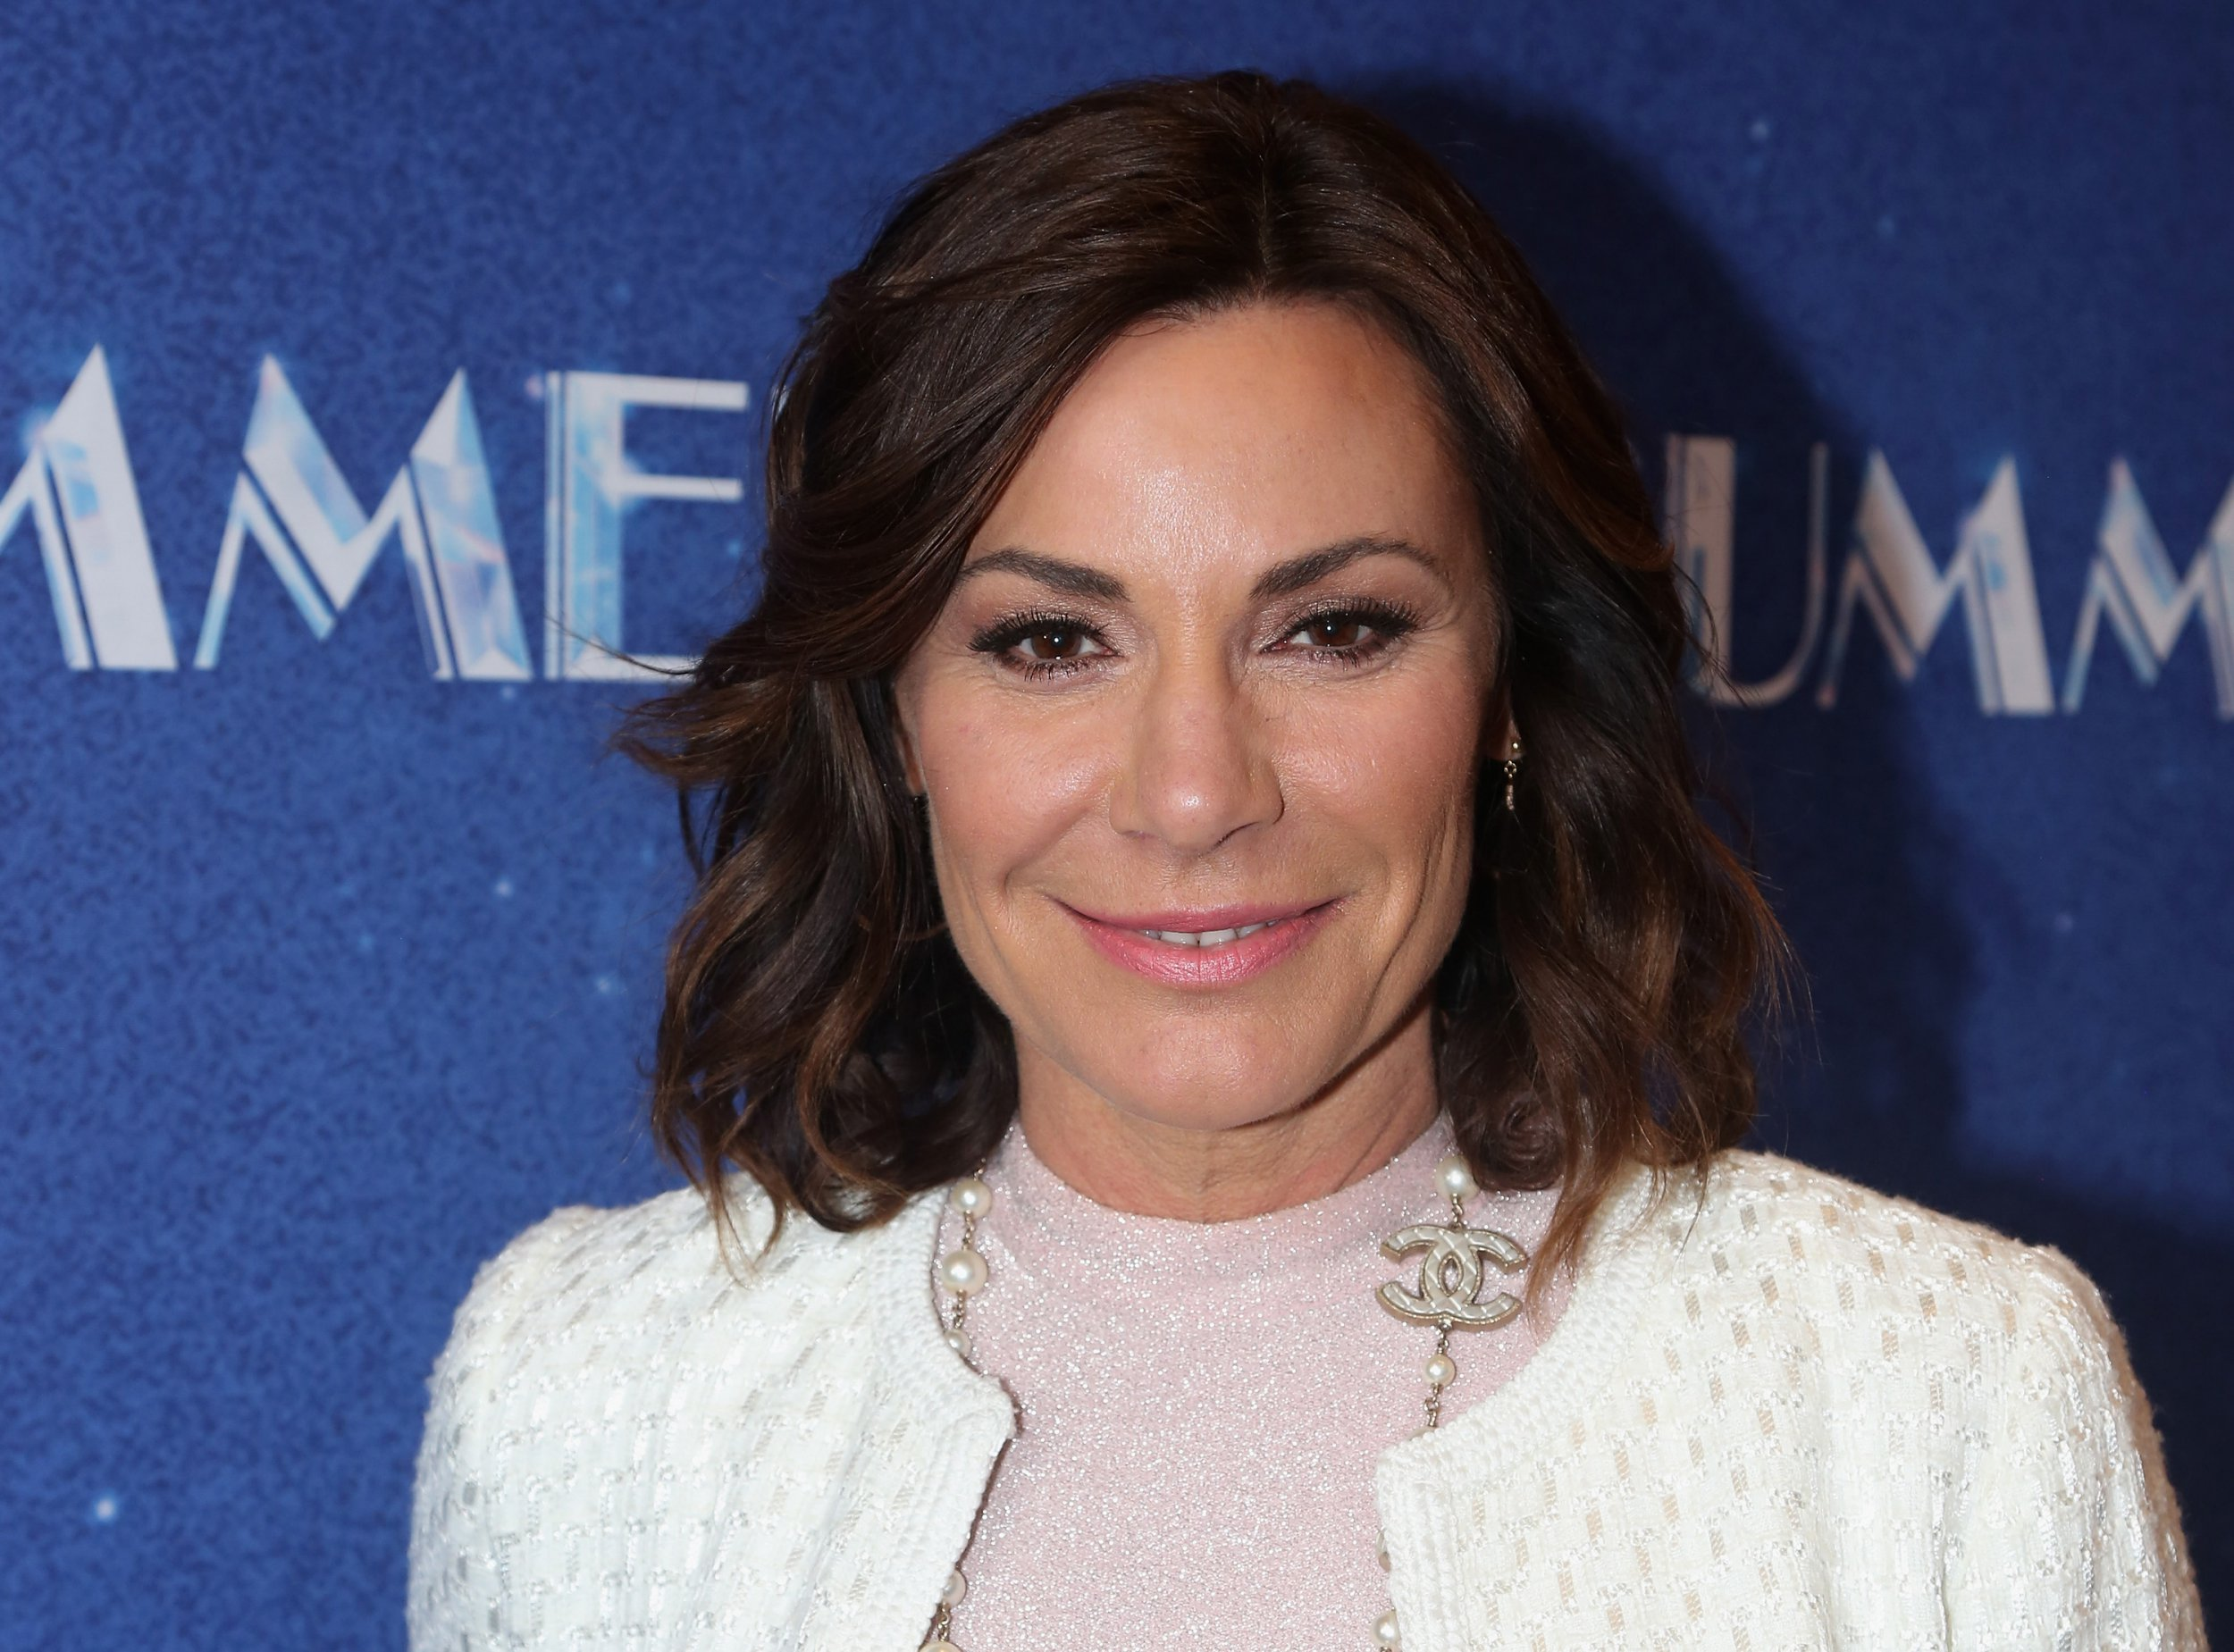 """NEW YORK, NY - APRIL 23: LuAnn de Lesseps poses at the opening night of """"Summer: The Donna Summer Musical"""" on Broadway at The Lunt-Fontanne Theatre on April 23, 2018 in New York City. (Photo by Bruce Glikas/Bruce Glikas/FilmMagic)"""